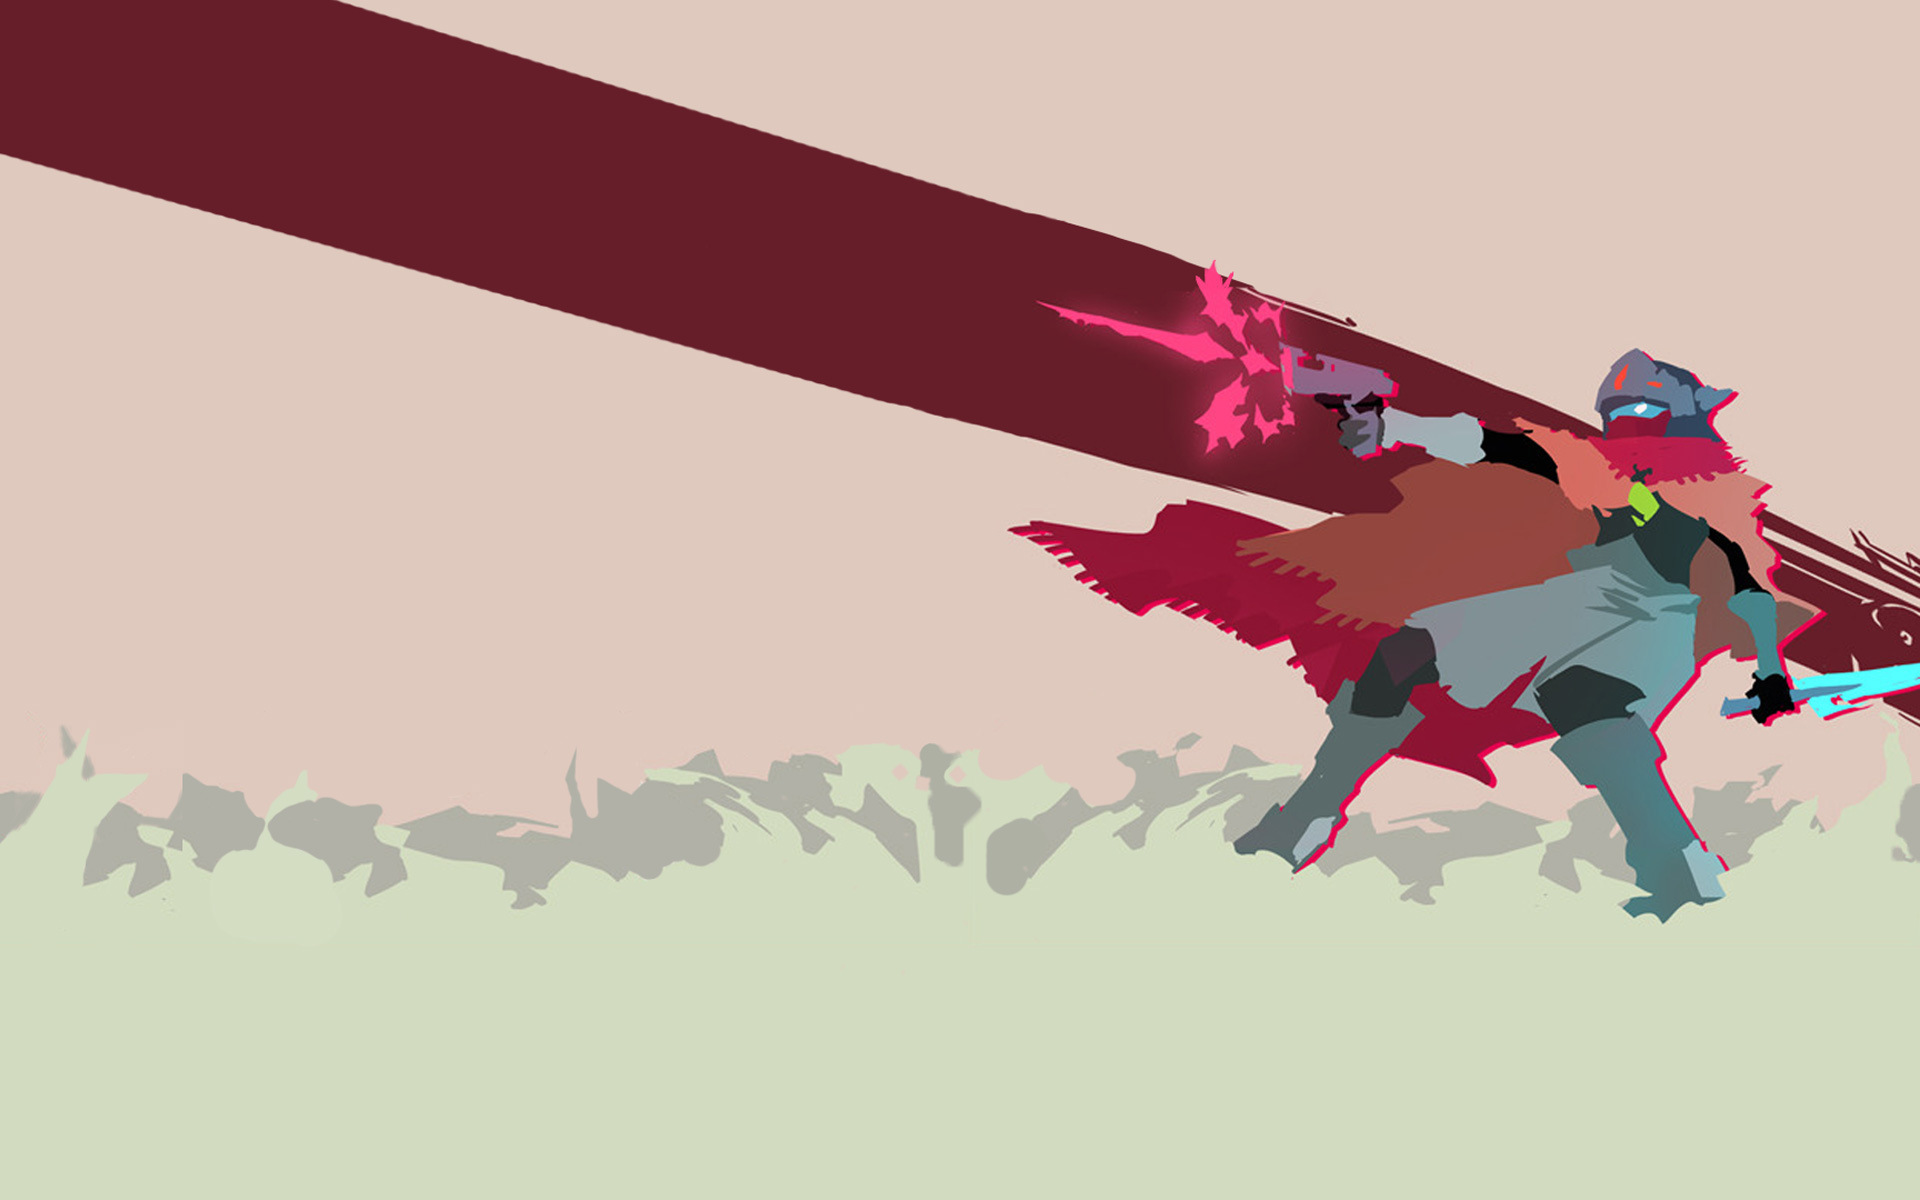 hyper-light-drifter-01-1920x1200.jpg